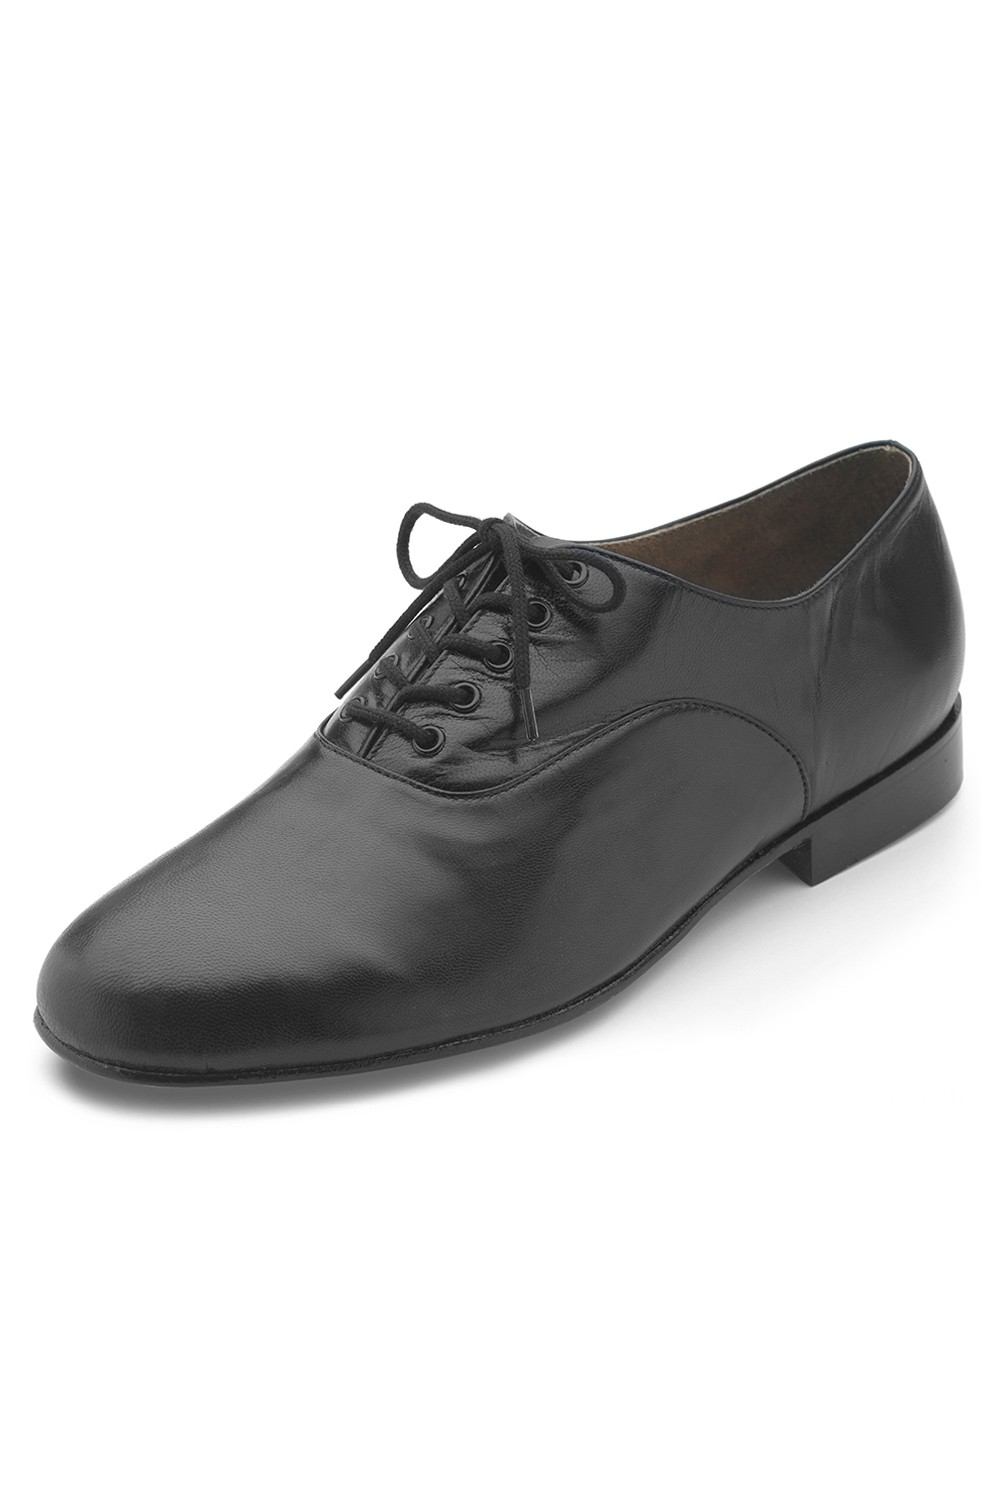 Men's Jazz Shoes